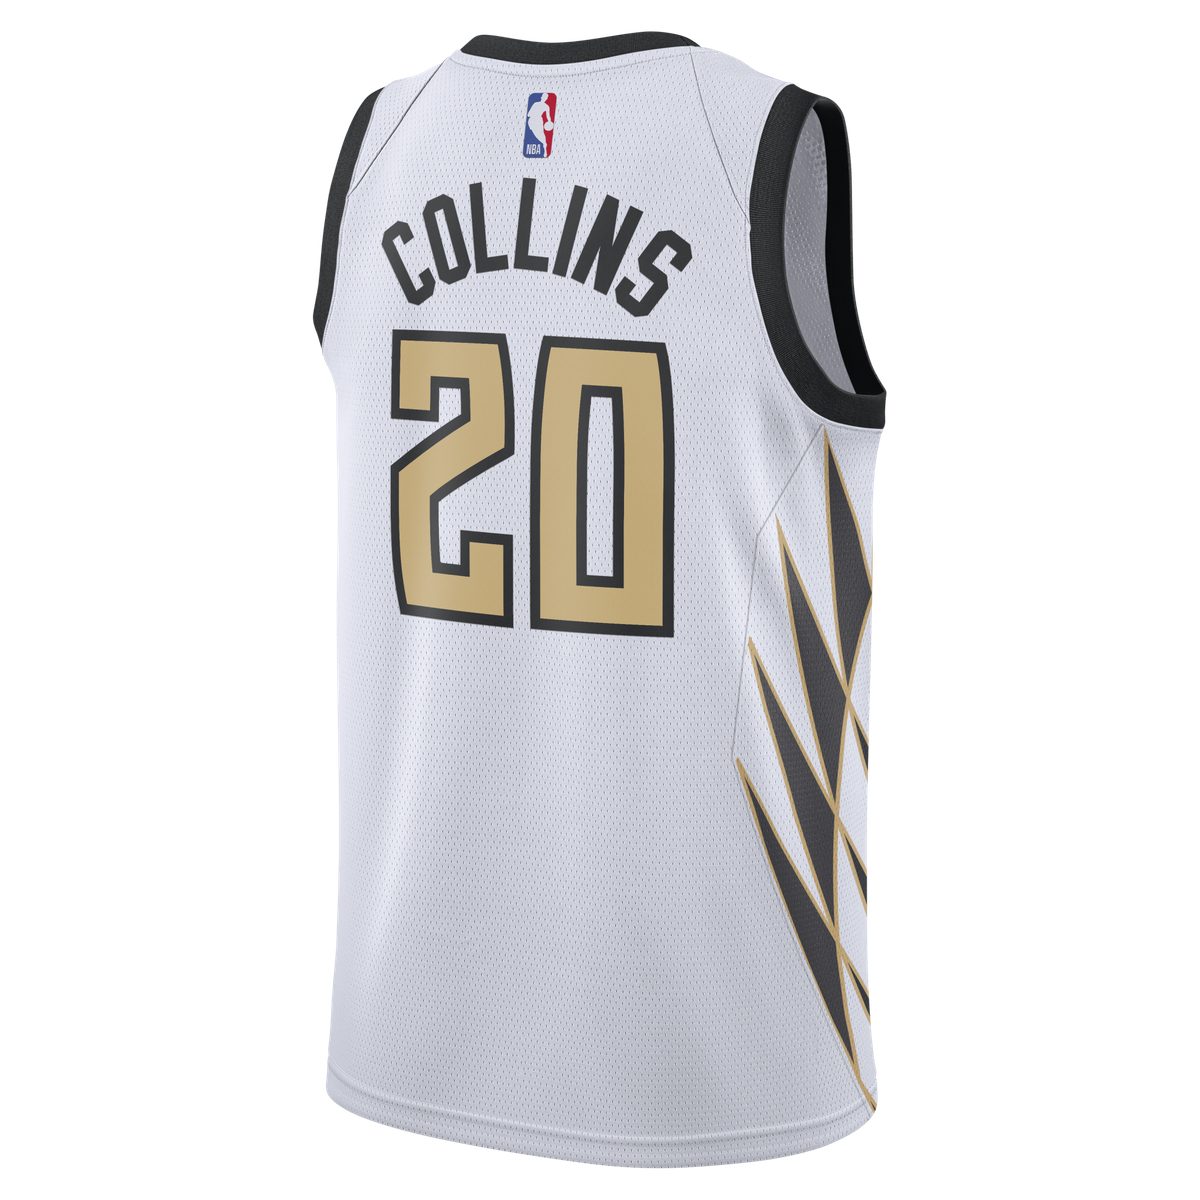 aae541f7955 John Collins Nike Swingman Jersey - City Edition for  109.99 Fanatics